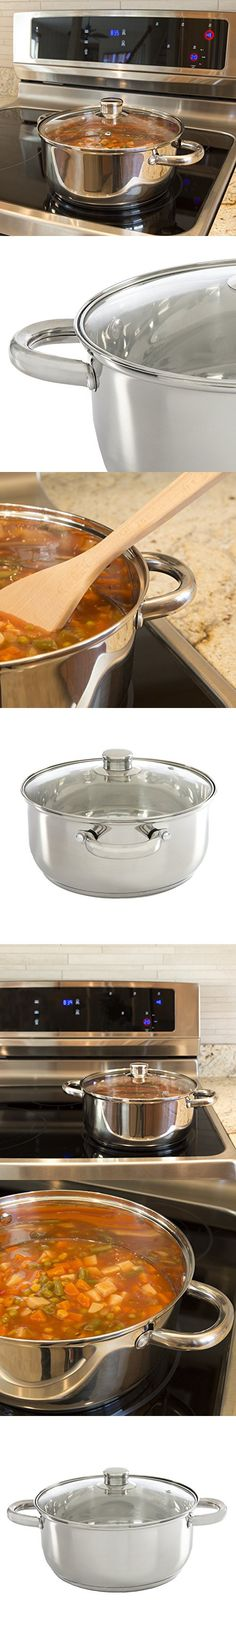 Ecolution Pure Intentions Dutch Oven  Features Tempered Glass Lid, Stay-Cool Handles, and Encapsulated Bottom  Oven Safe  Curbside Recyclable Stainless Steel  5 Quarts